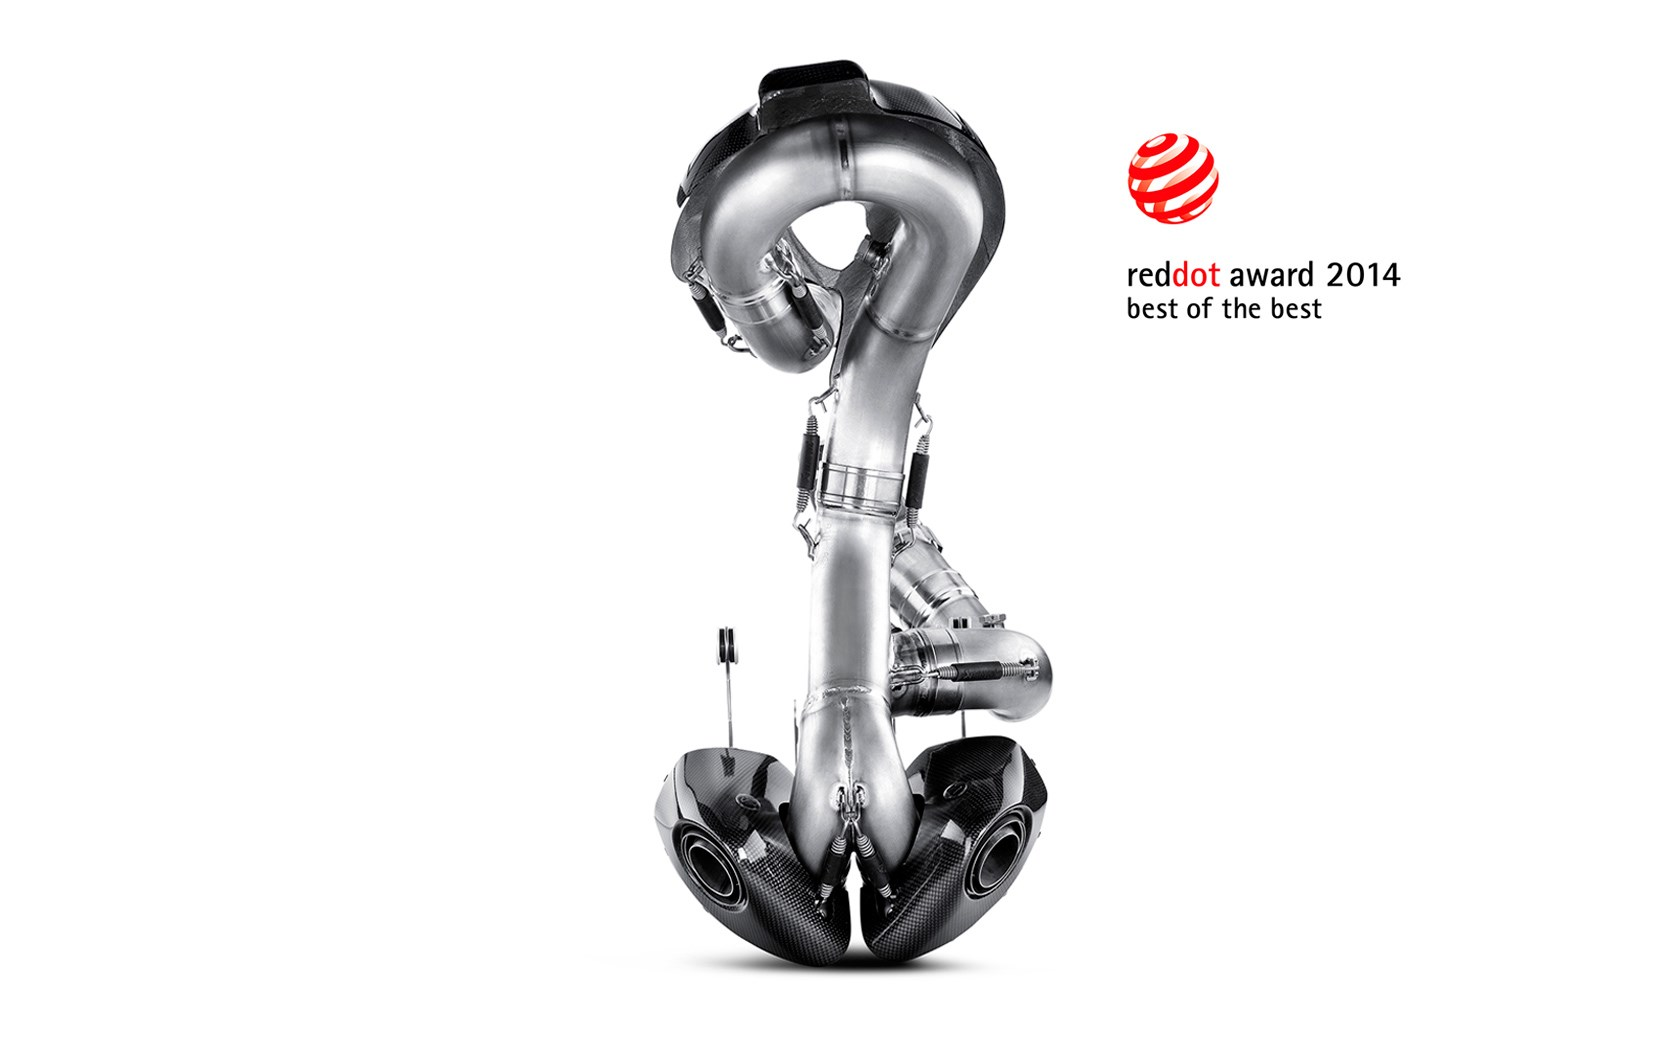 Akrapovic Wins Best Of The Best Red Dot Award For Ducati